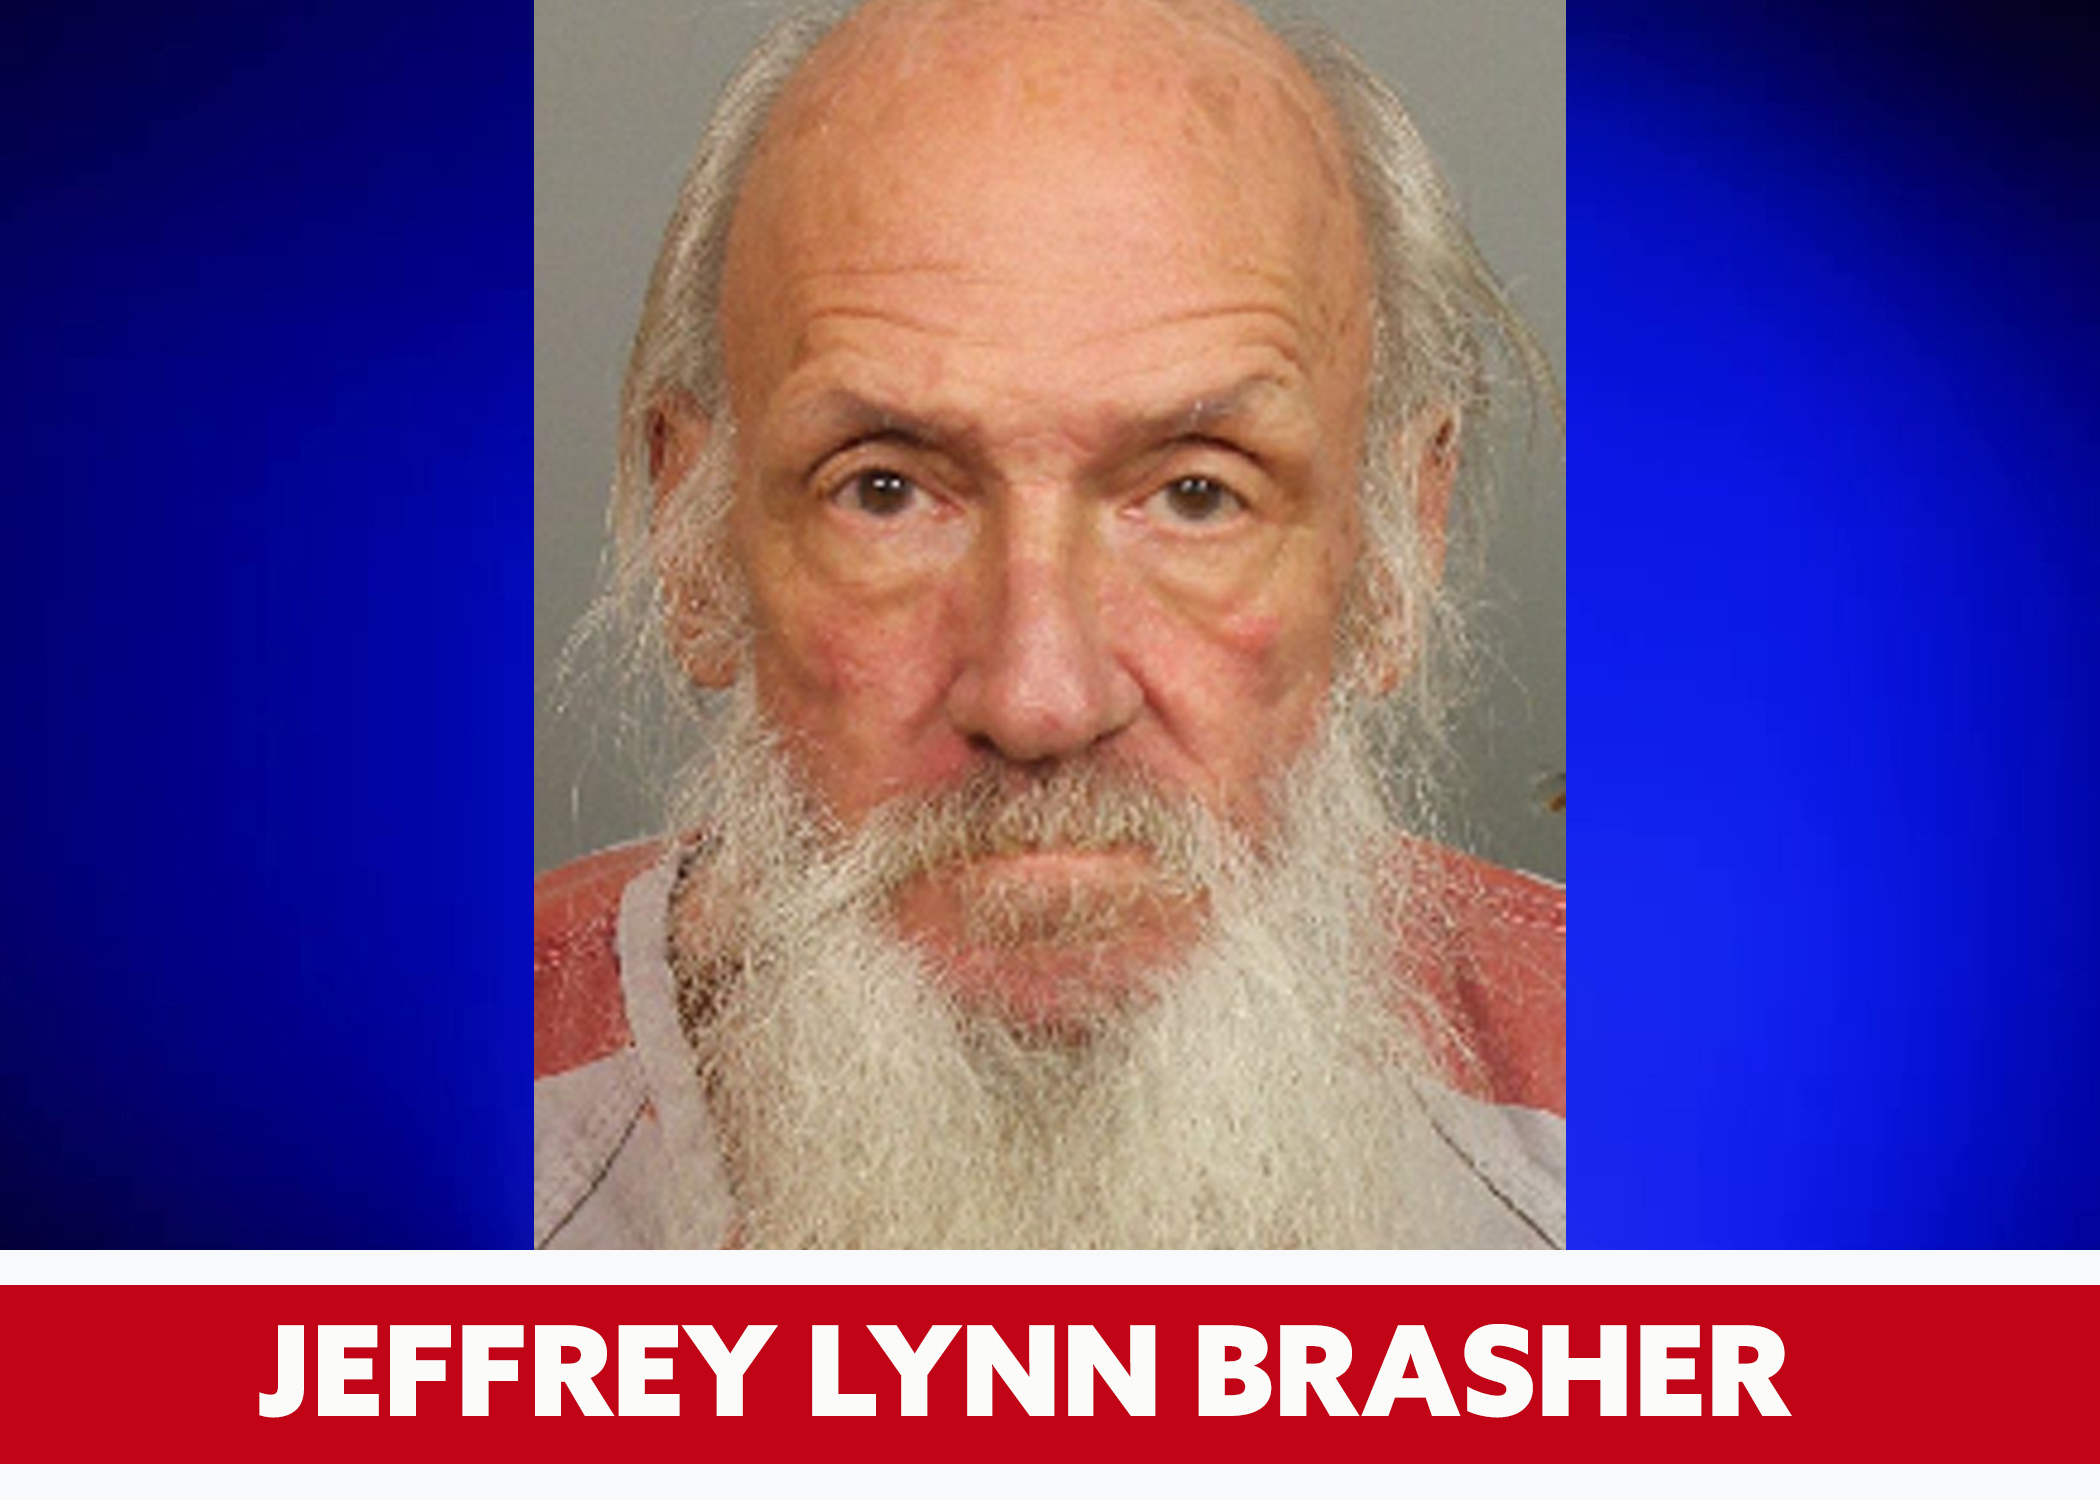 CRIME STOPPERS: Jefferson County man wanted for Violation of Sex Offender Registration and Notification Act